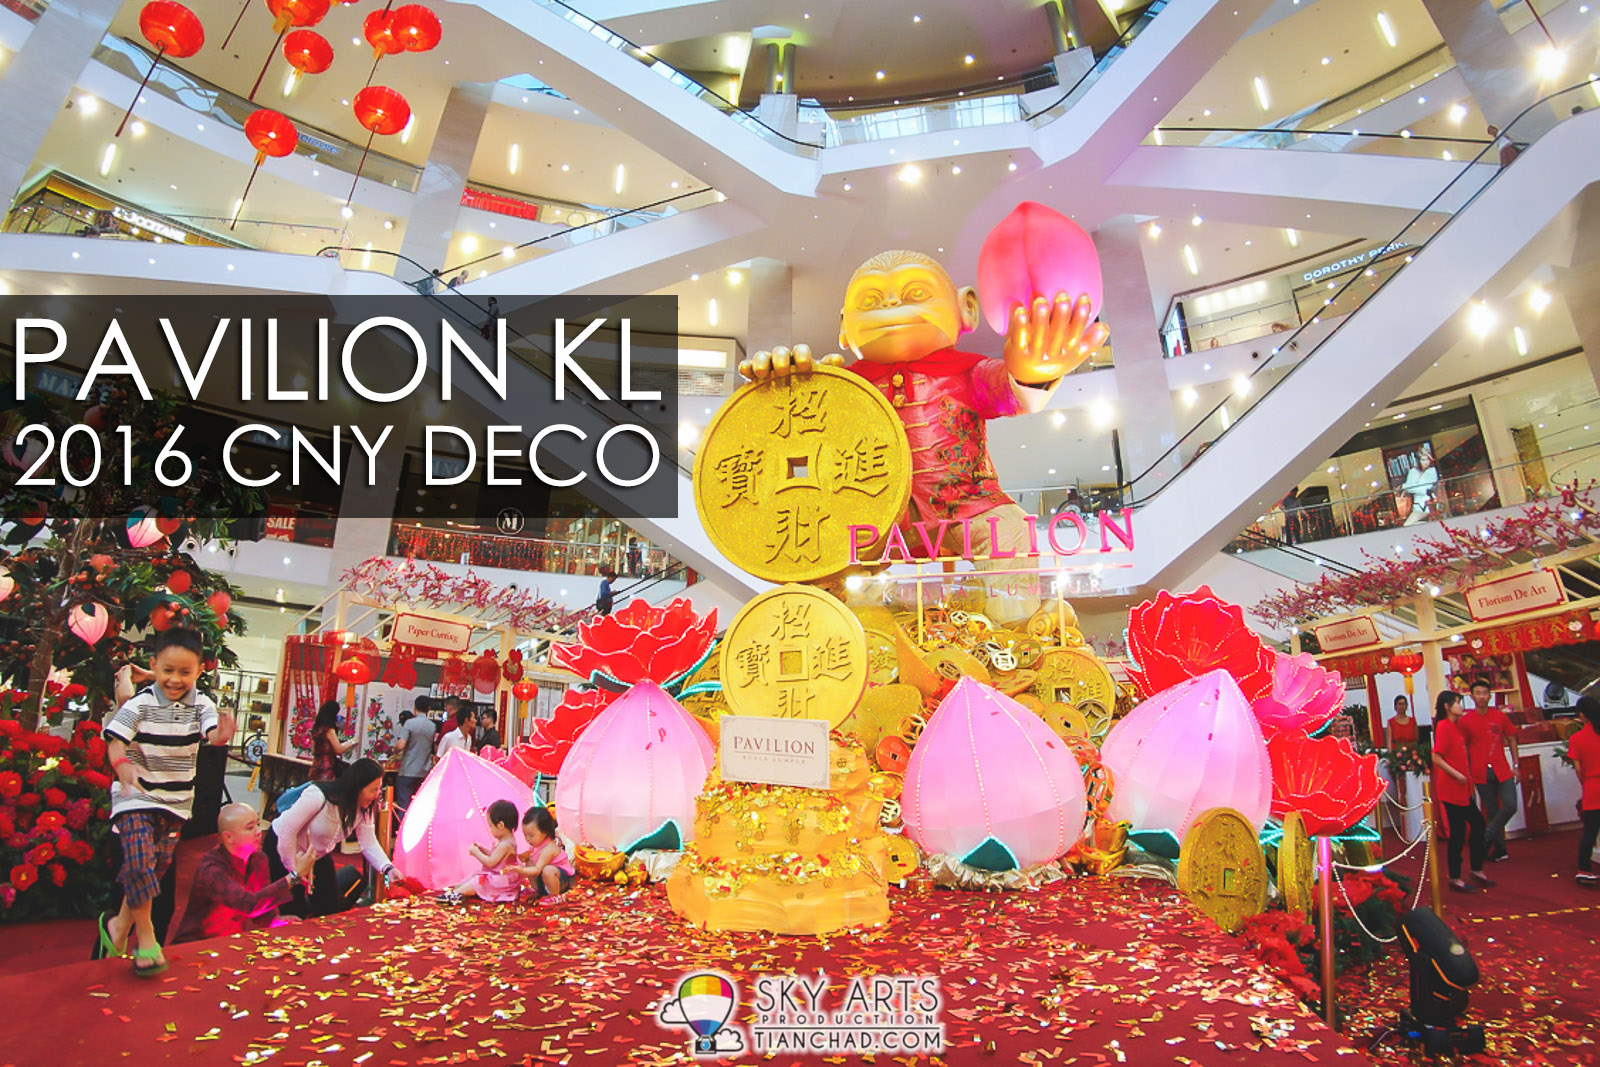 Pavilion KL 2016 Chinese New Year Decoration - Auspicious Golden Monkey